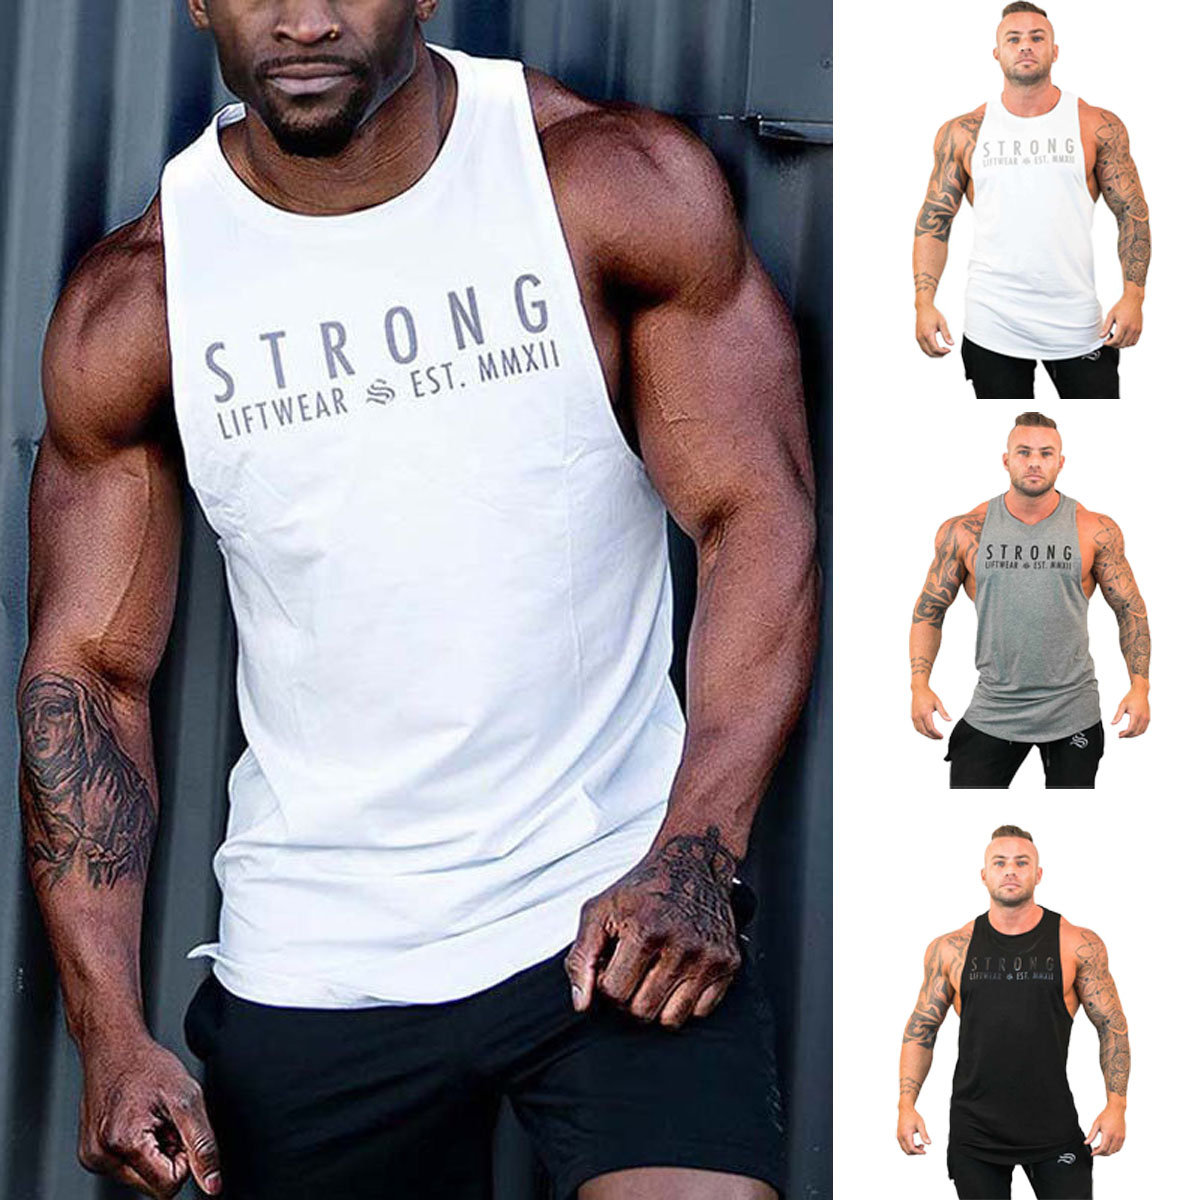 751510e3 Details about HOT Mens Bodybuilding Stringer Tank Top Y-Back Gym Workout  Sports Vest Shirt